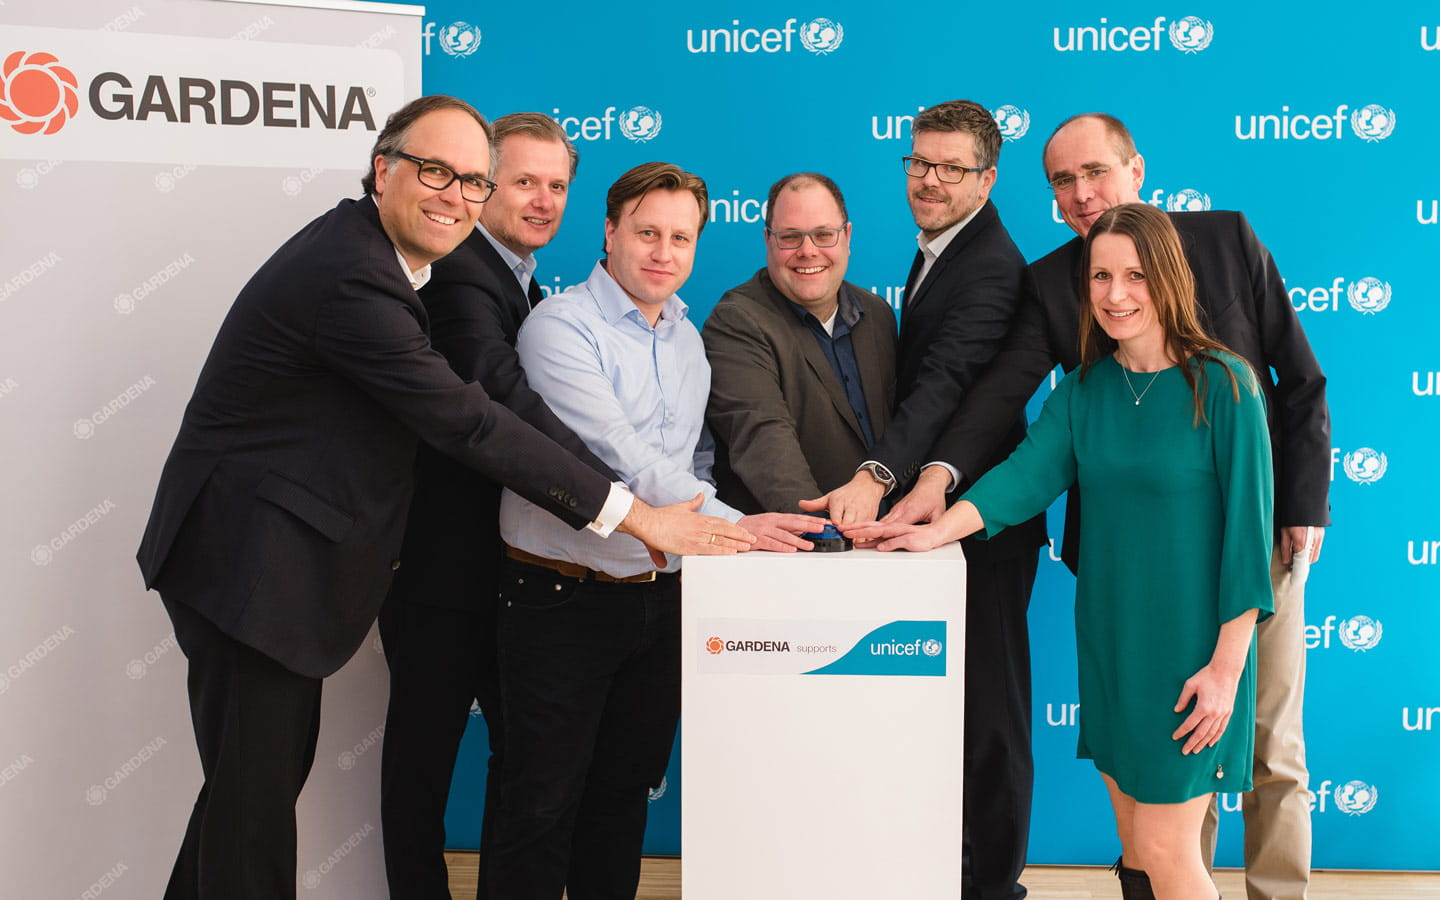 Start of partnership between GARDENA and UNICEF